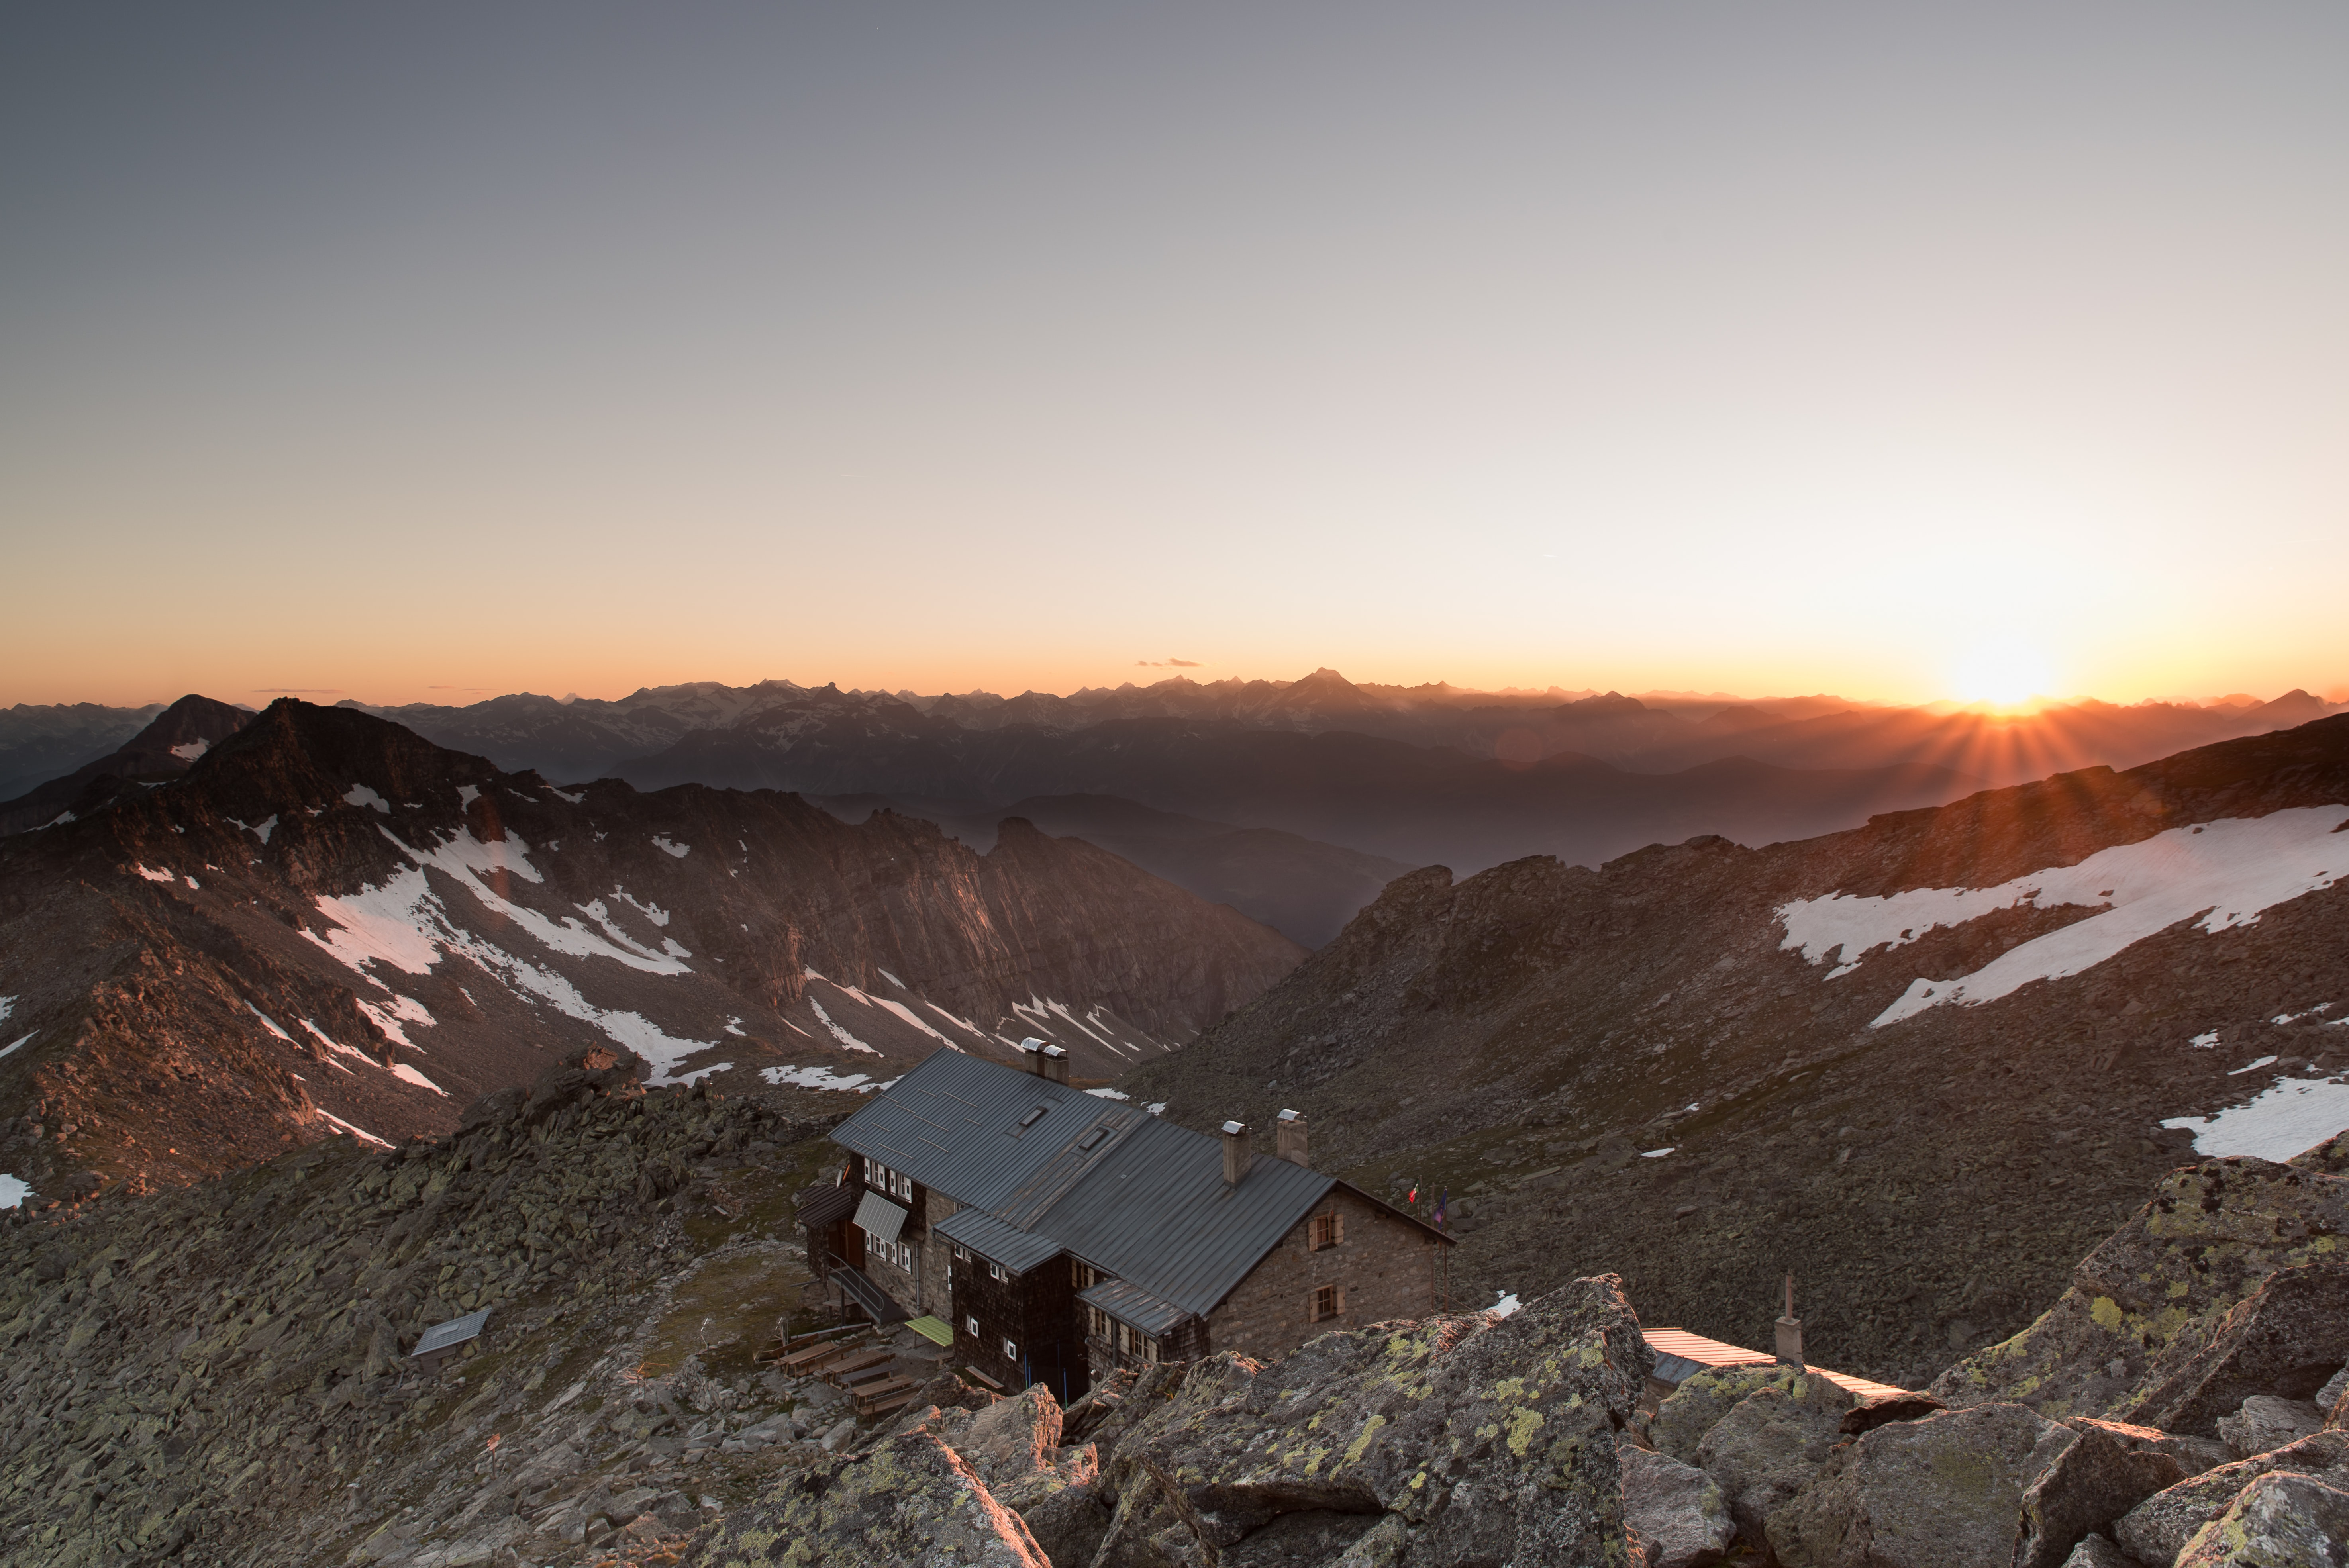 Sun setting overlooking a house surrounded by snow covered mountain tops.